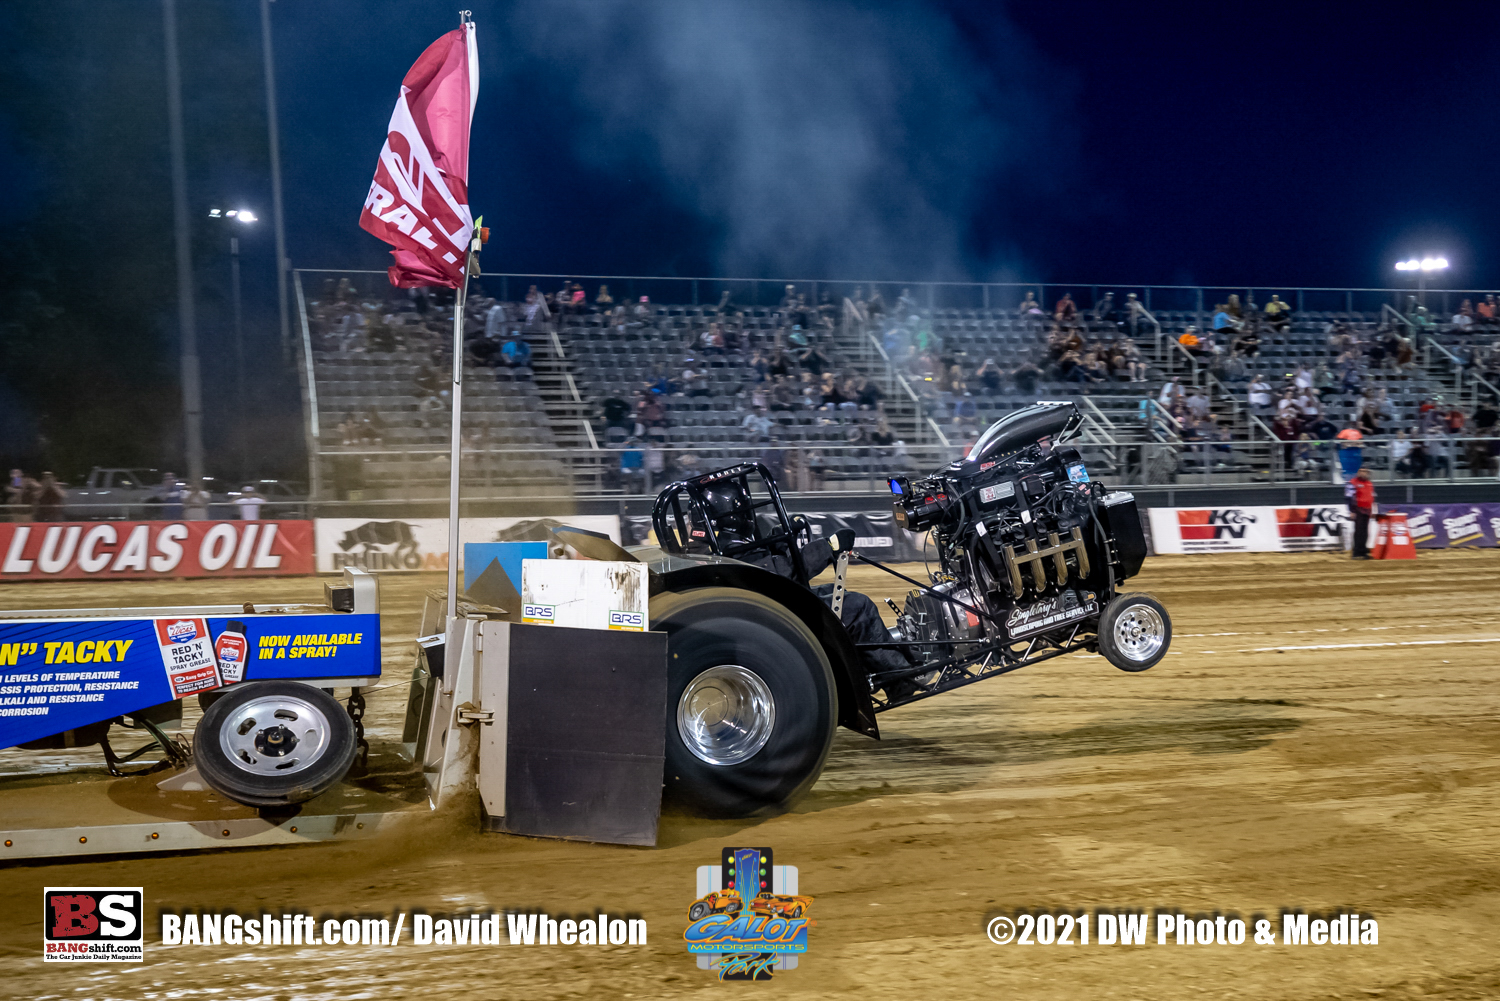 Lucas Oil Pro Pulling League Mule City 300 Action Photos: The Beasts Were Roaring Again At GALOT Motorsports Park!